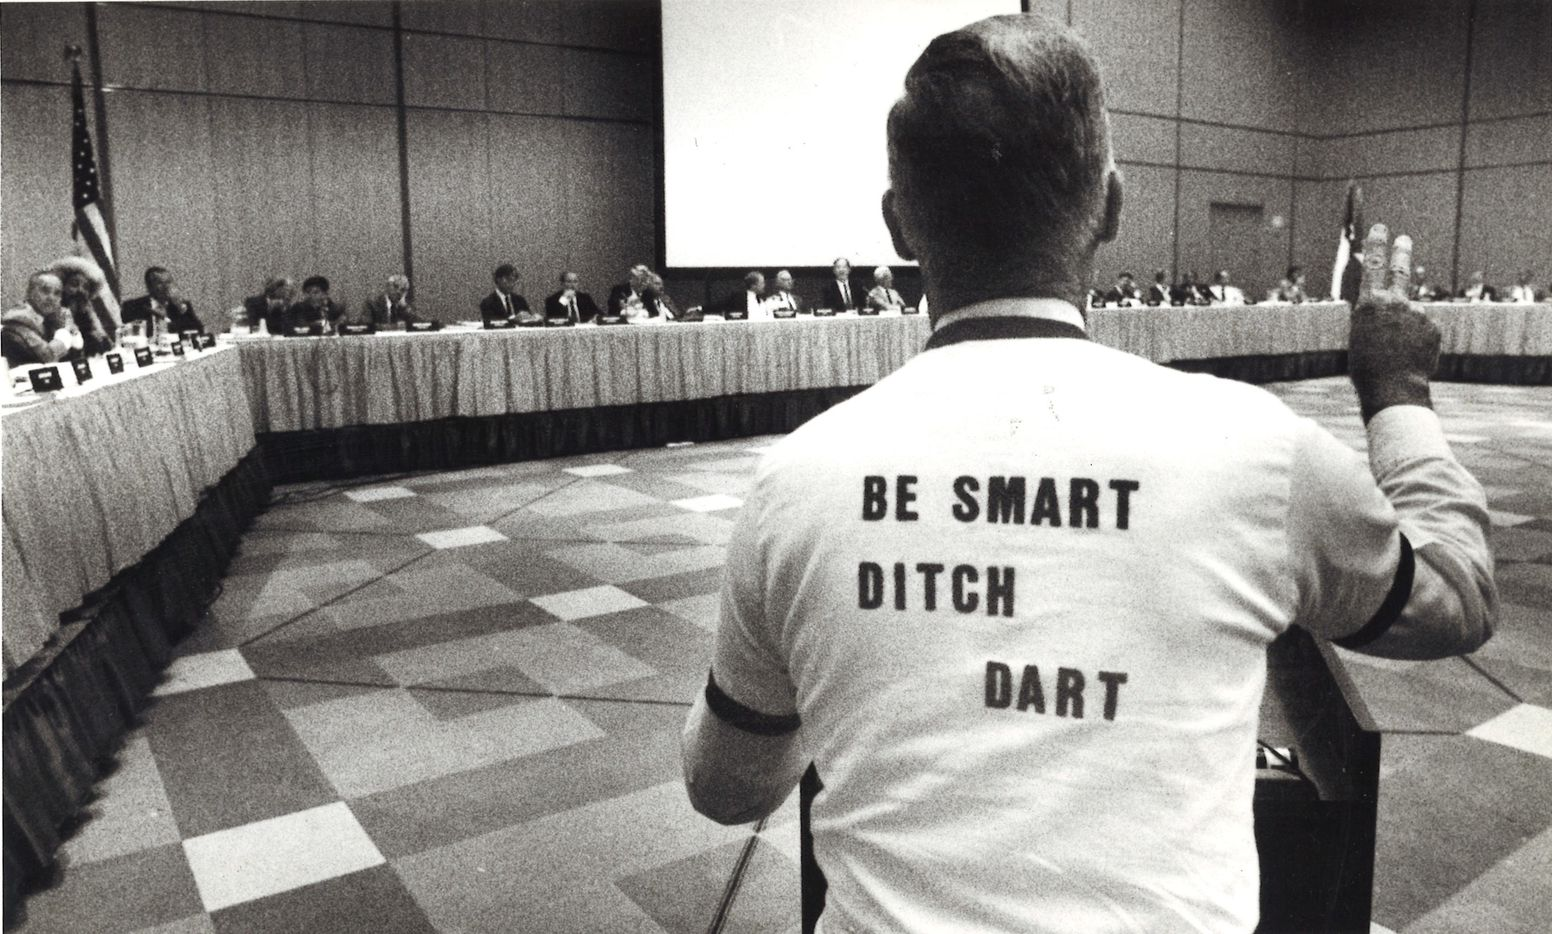 """Dewayne Dallas wears a T-shirt """"Be Smart, Ditch Dart"""" while speaking at a public hearing at the Dallas Convention Center in 1985."""